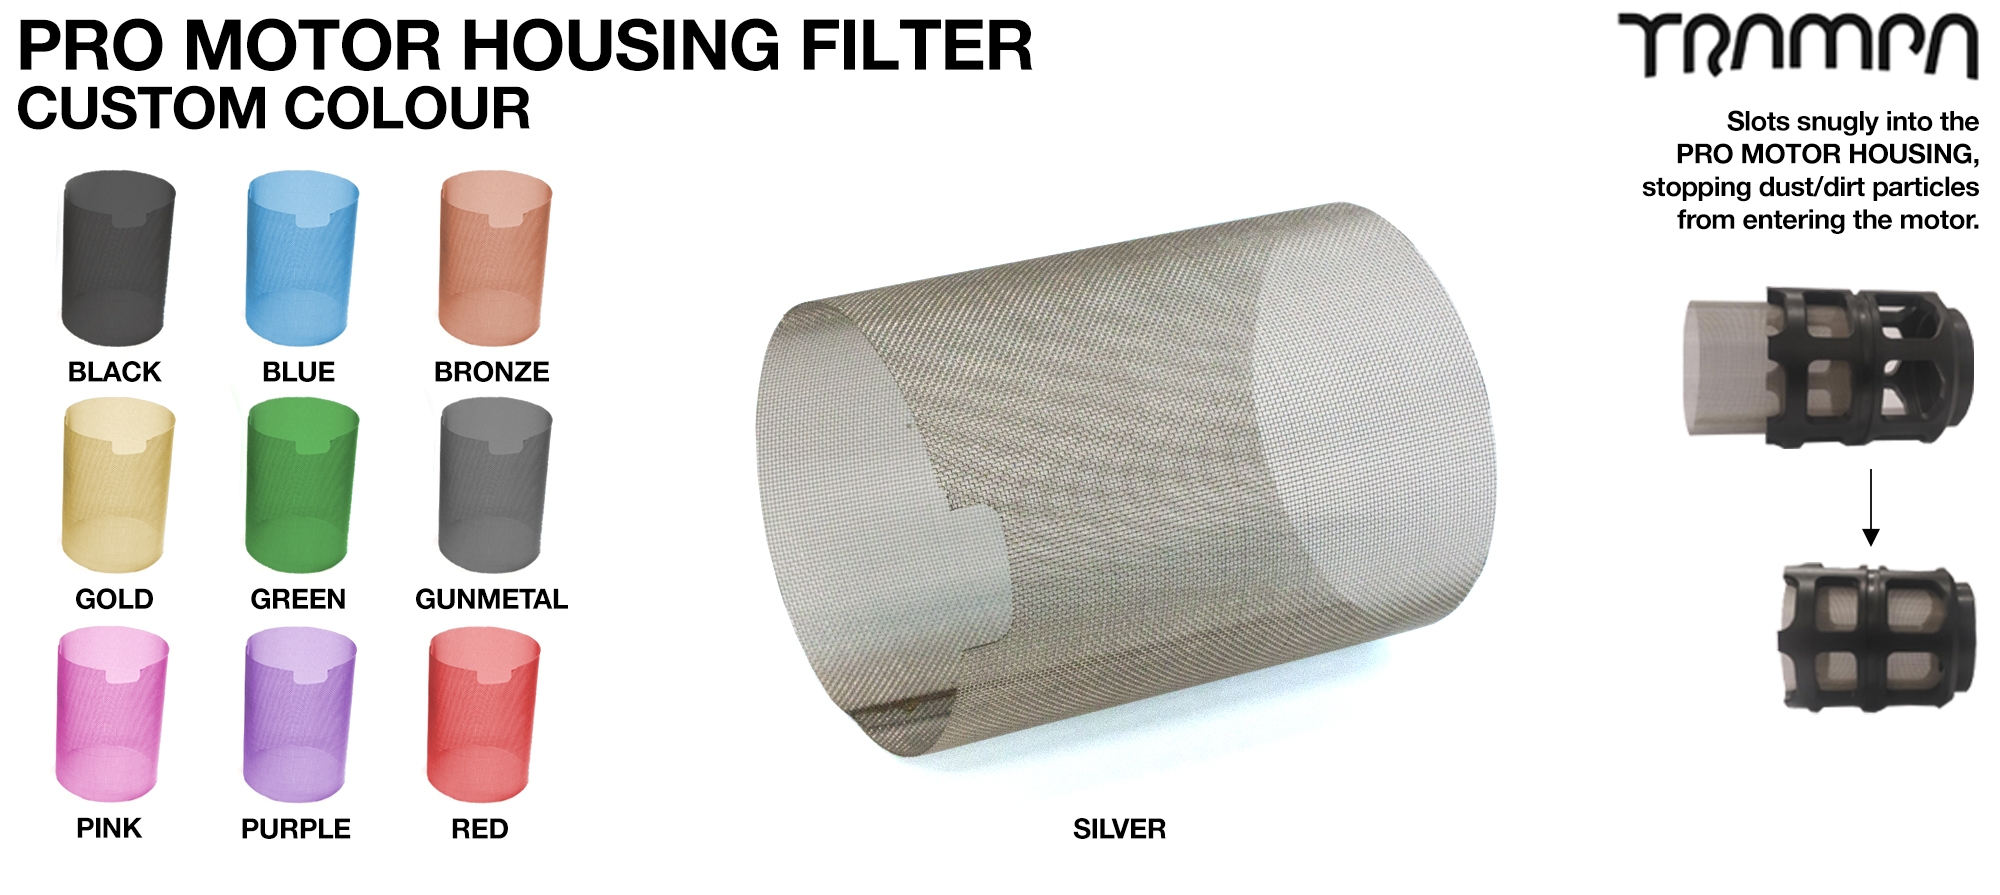 Motor Protection Sleeve Stainless Steel Mesh FILTER